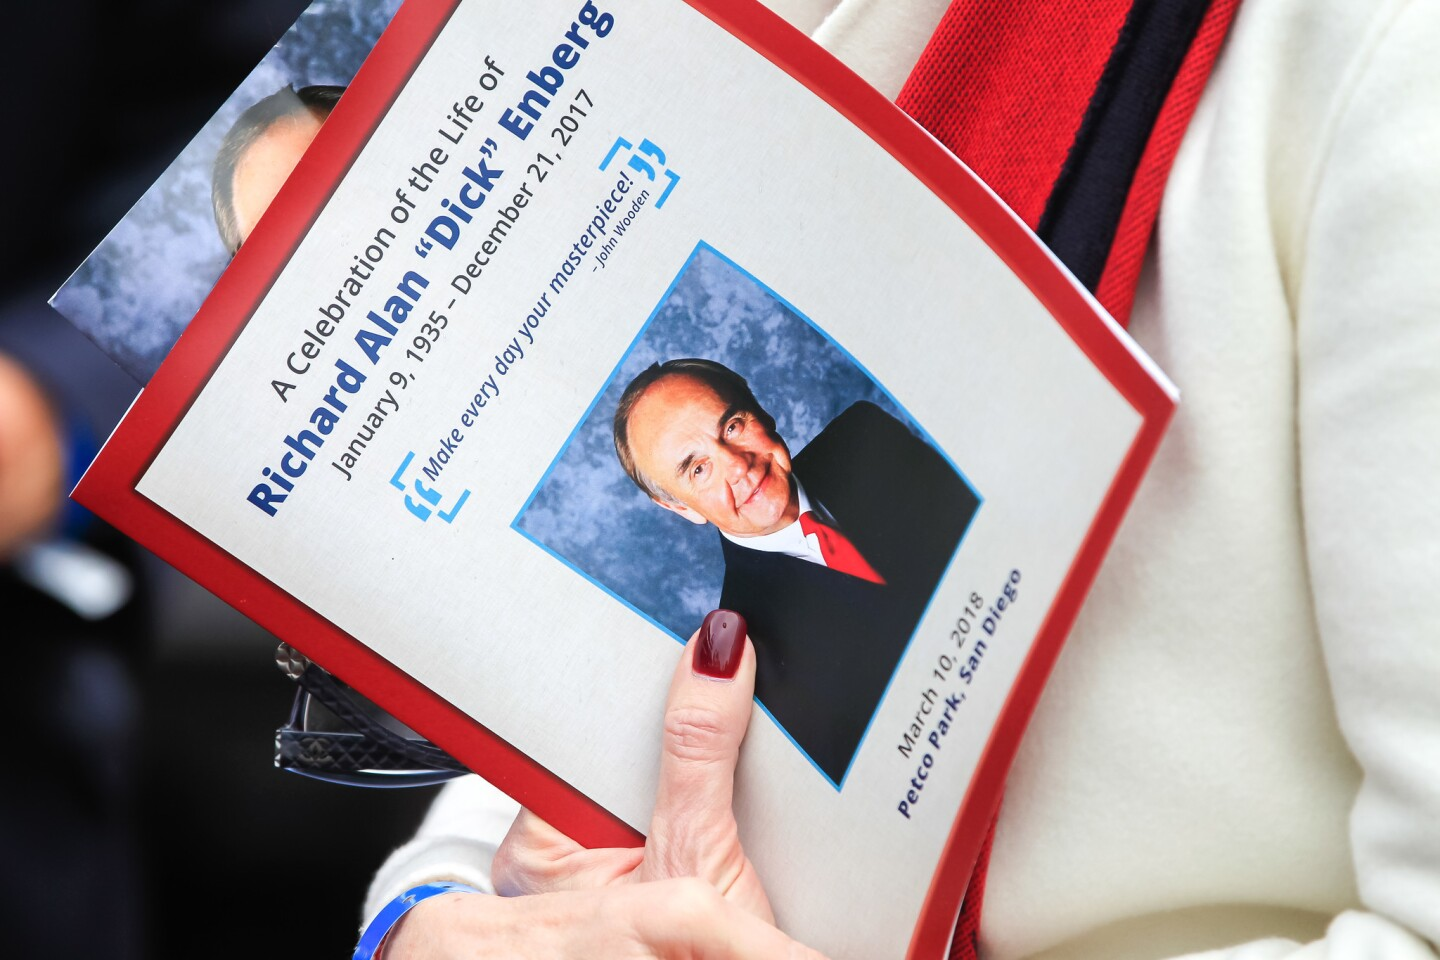 A guest holds a program during the Celebration of Life for Dick Enberg.